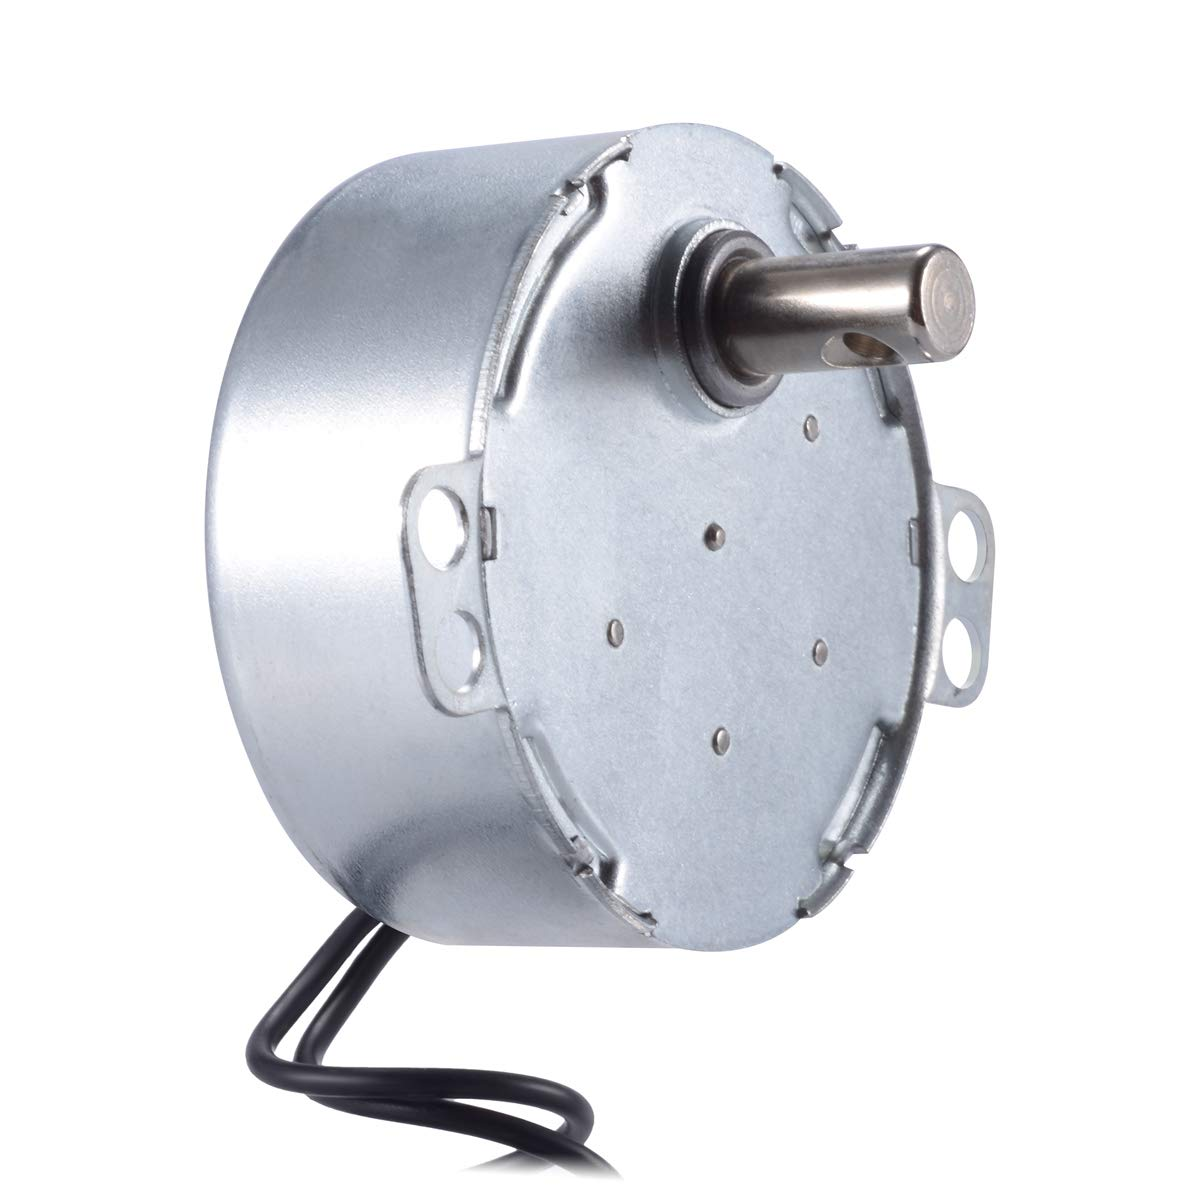 2 Pcs 2.5/3 RPM Electric Motor - AC 100V~130V Micro Turntable Synchronous Motor, 50/60Hz 4W CCW/CW - for Microwave Oven, Hand-Made, School Project, Model etc.